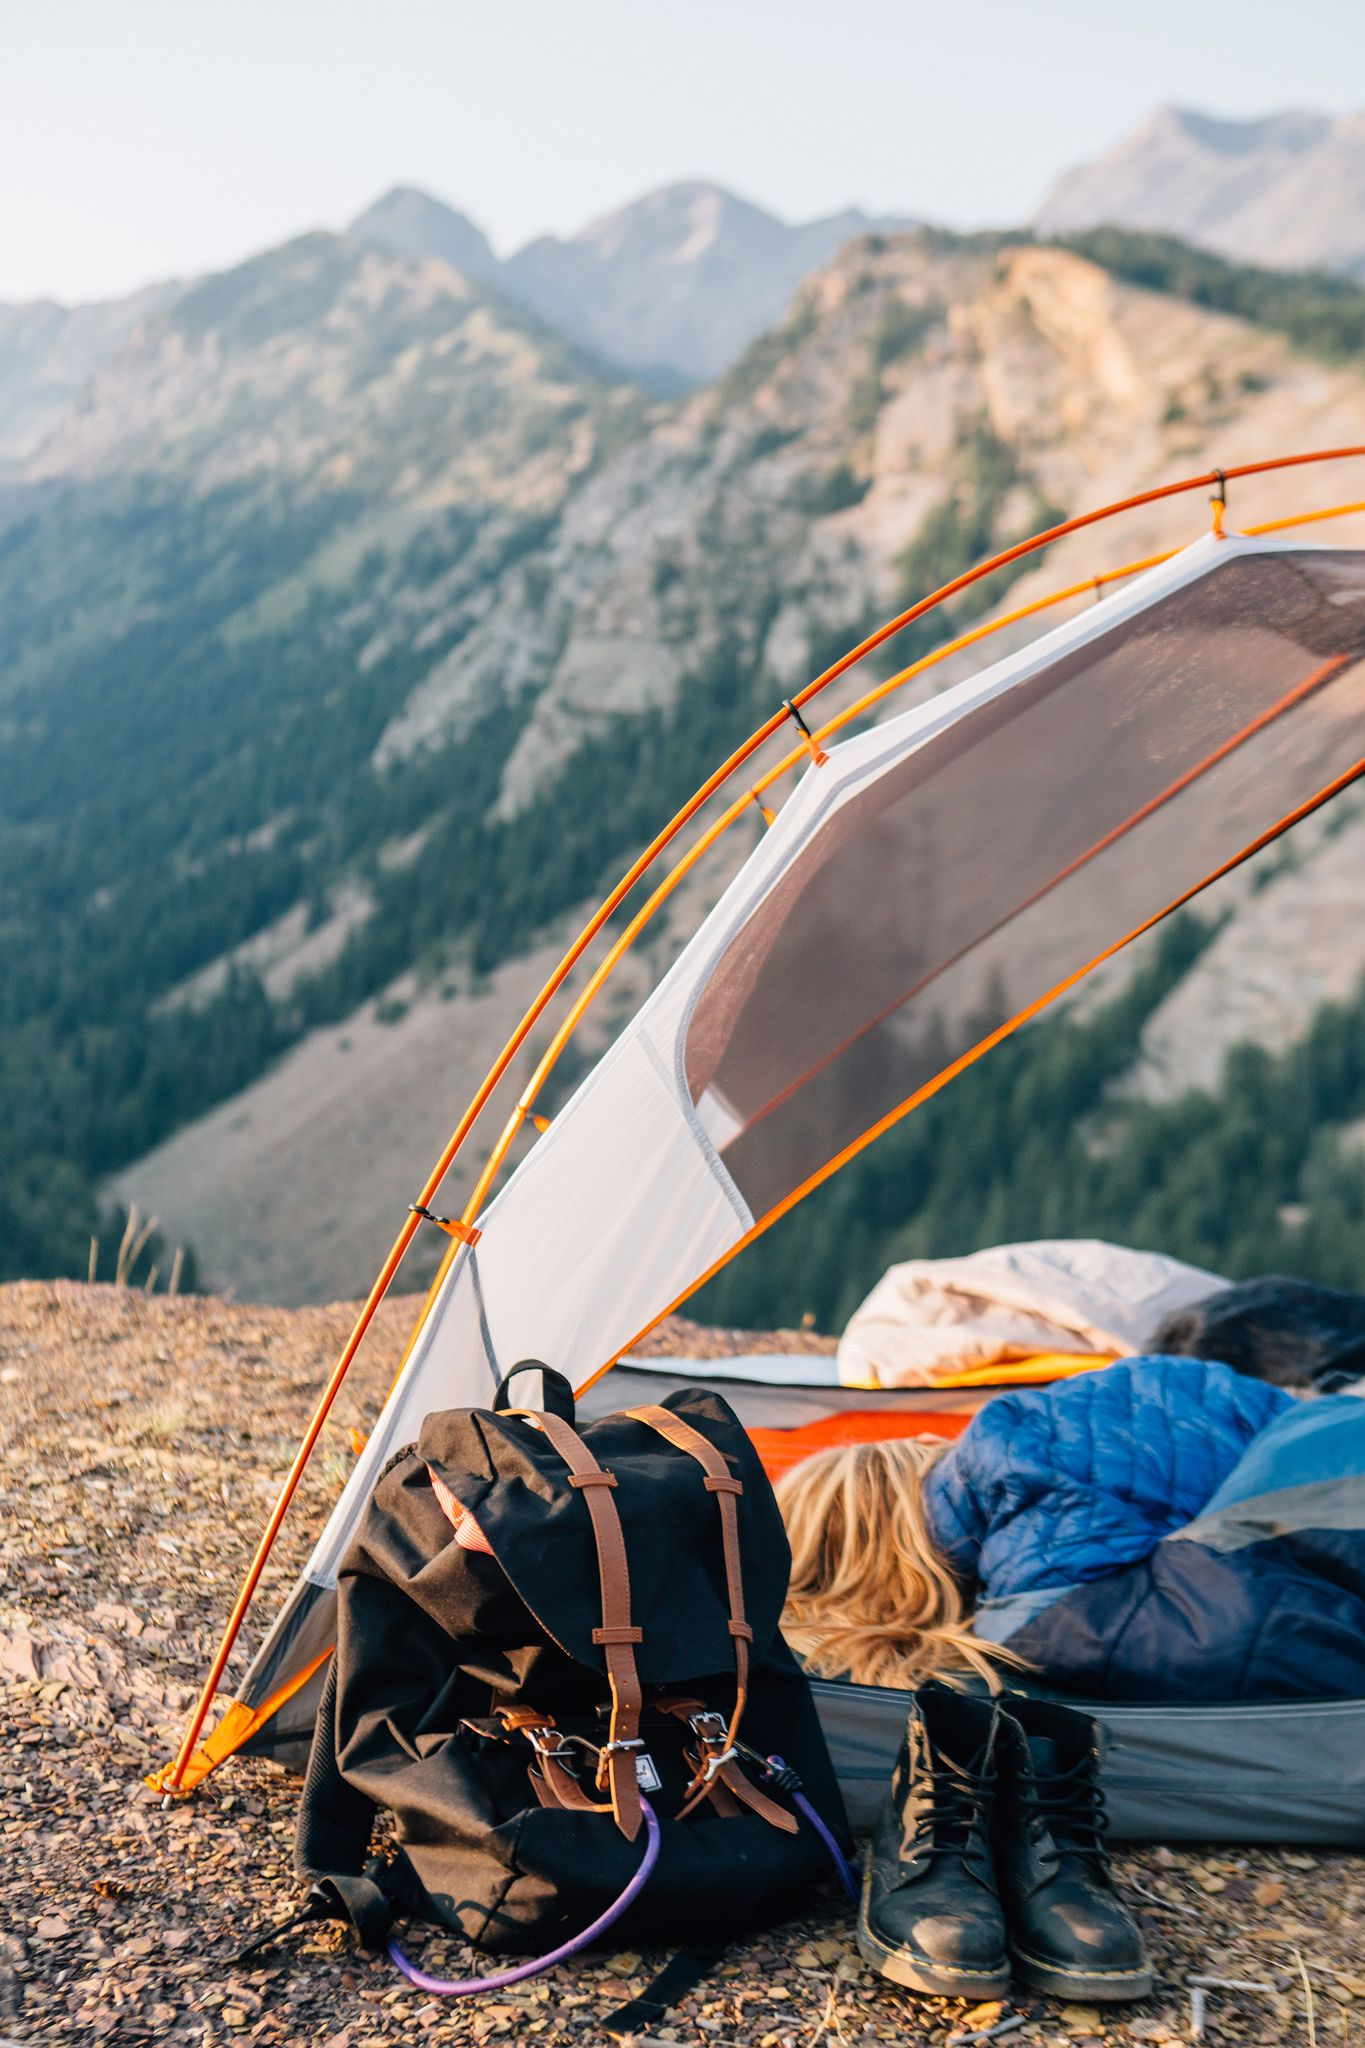 tent + gear big cottonwood canyon utah | c&ing + outdoors #adventure & Cliffside Camping. | Camping outdoors Utah and Camping